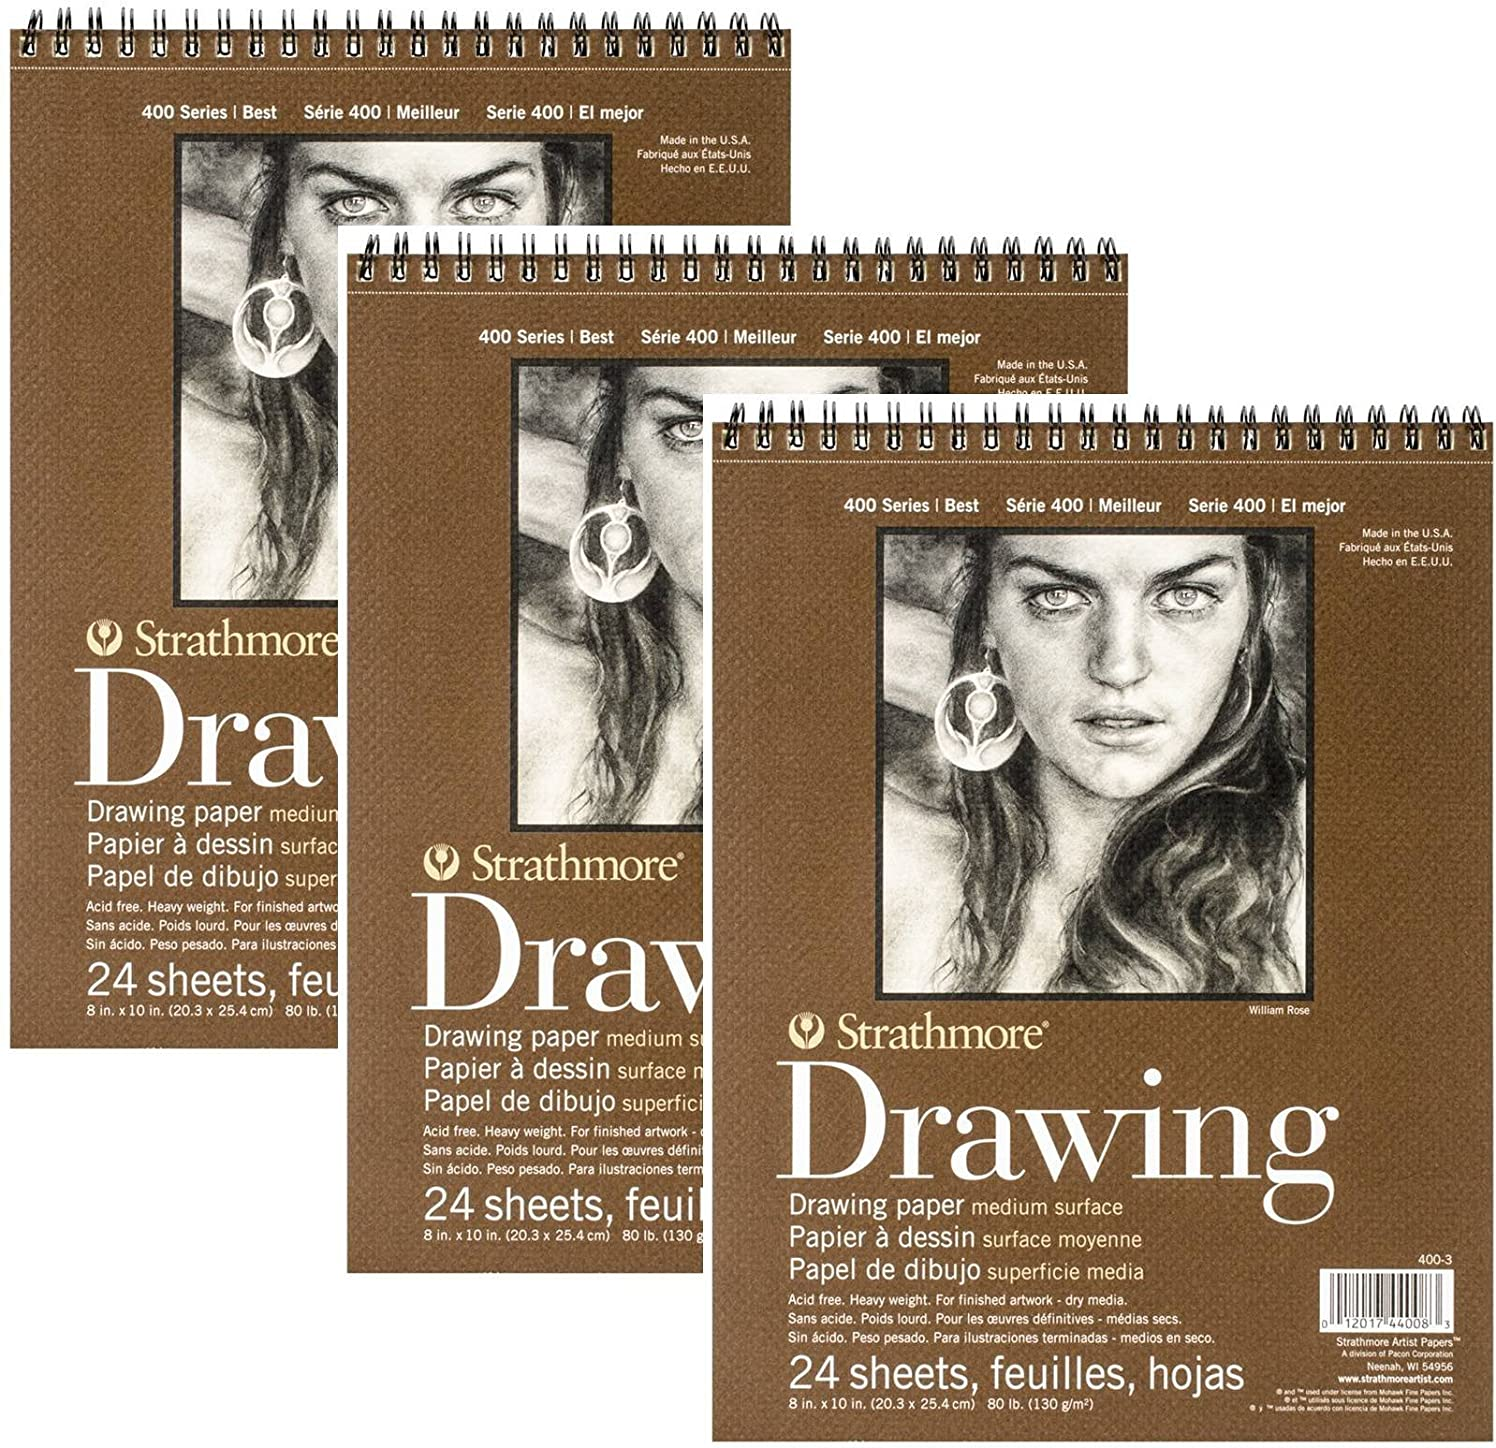 Bulk Buy: Strathmore (3-Pack) Medium Drawing Spiral Paper Pad 8in. x 10in. 24 Sheets 400300